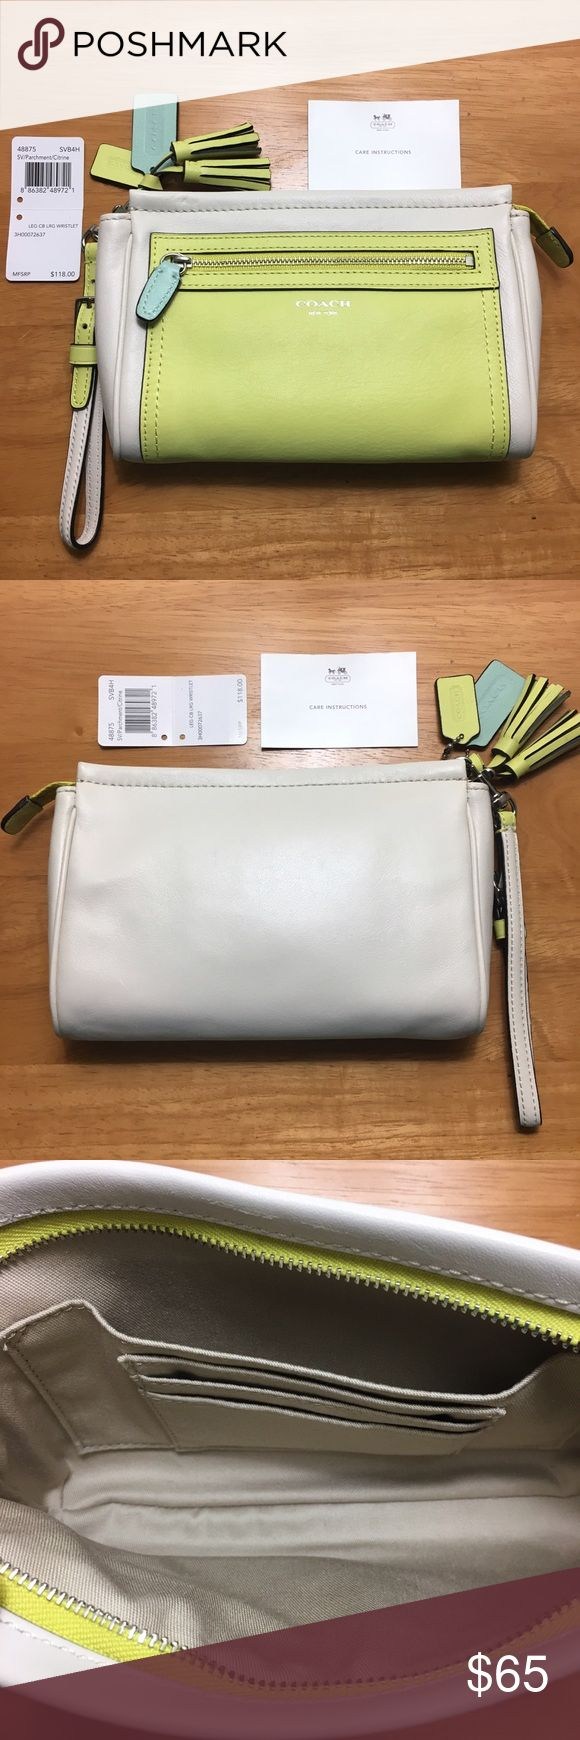 "💚 Coach Legacy Colorblock Large Wristlet 💚 Authentic Coach Legacy Colorblock Leather Large Wristlet in Parchment/Citrine with silver-tone hardware. Style #48875, SVB4H. Dimensions: 8"" L x 5"" H x 1.75"" W. Features colorblock leather; contrasting zipper pull/hangtag; exterior zip pocket; 3 interior credit card pockets & one large slip pocket; zip-top closure; detachable wrist strap; embossed Coach logo on front; mini tassels; and 2 hangtags. EXCELLENT preloved condition! Includes care card…"